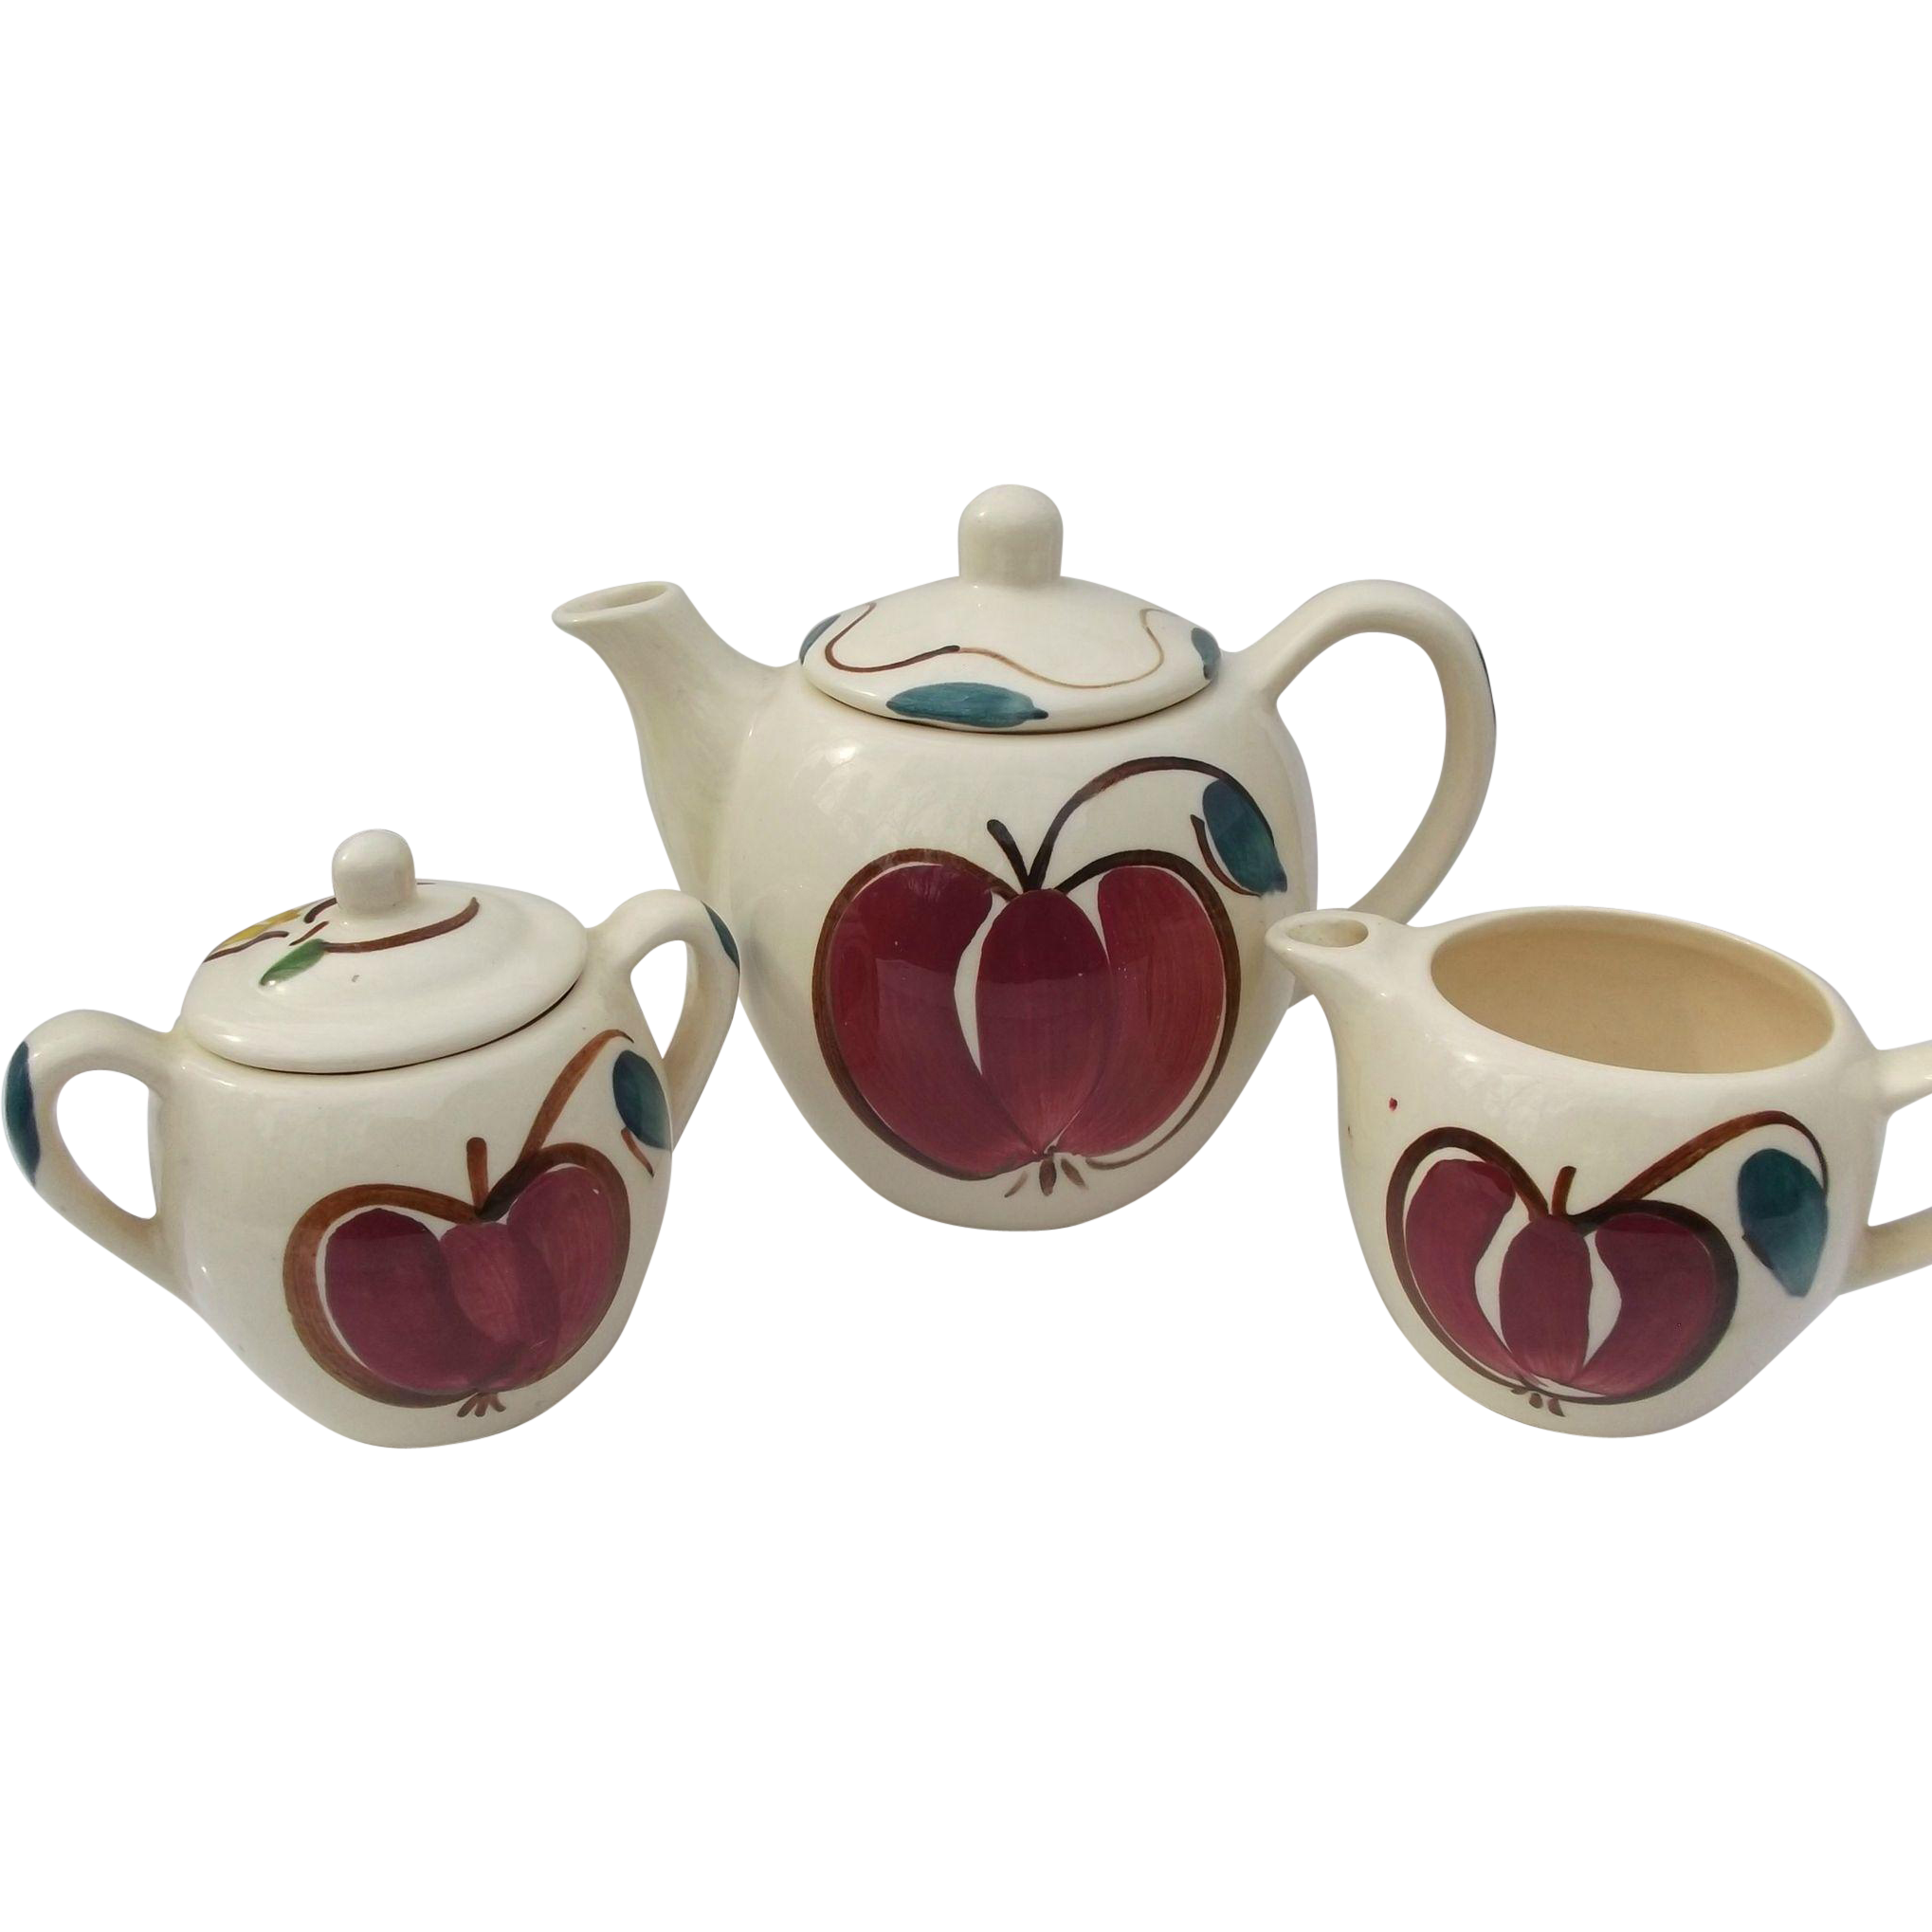 Purinton Pottery Vintage Apple Pear Teapot Sugar Creamer